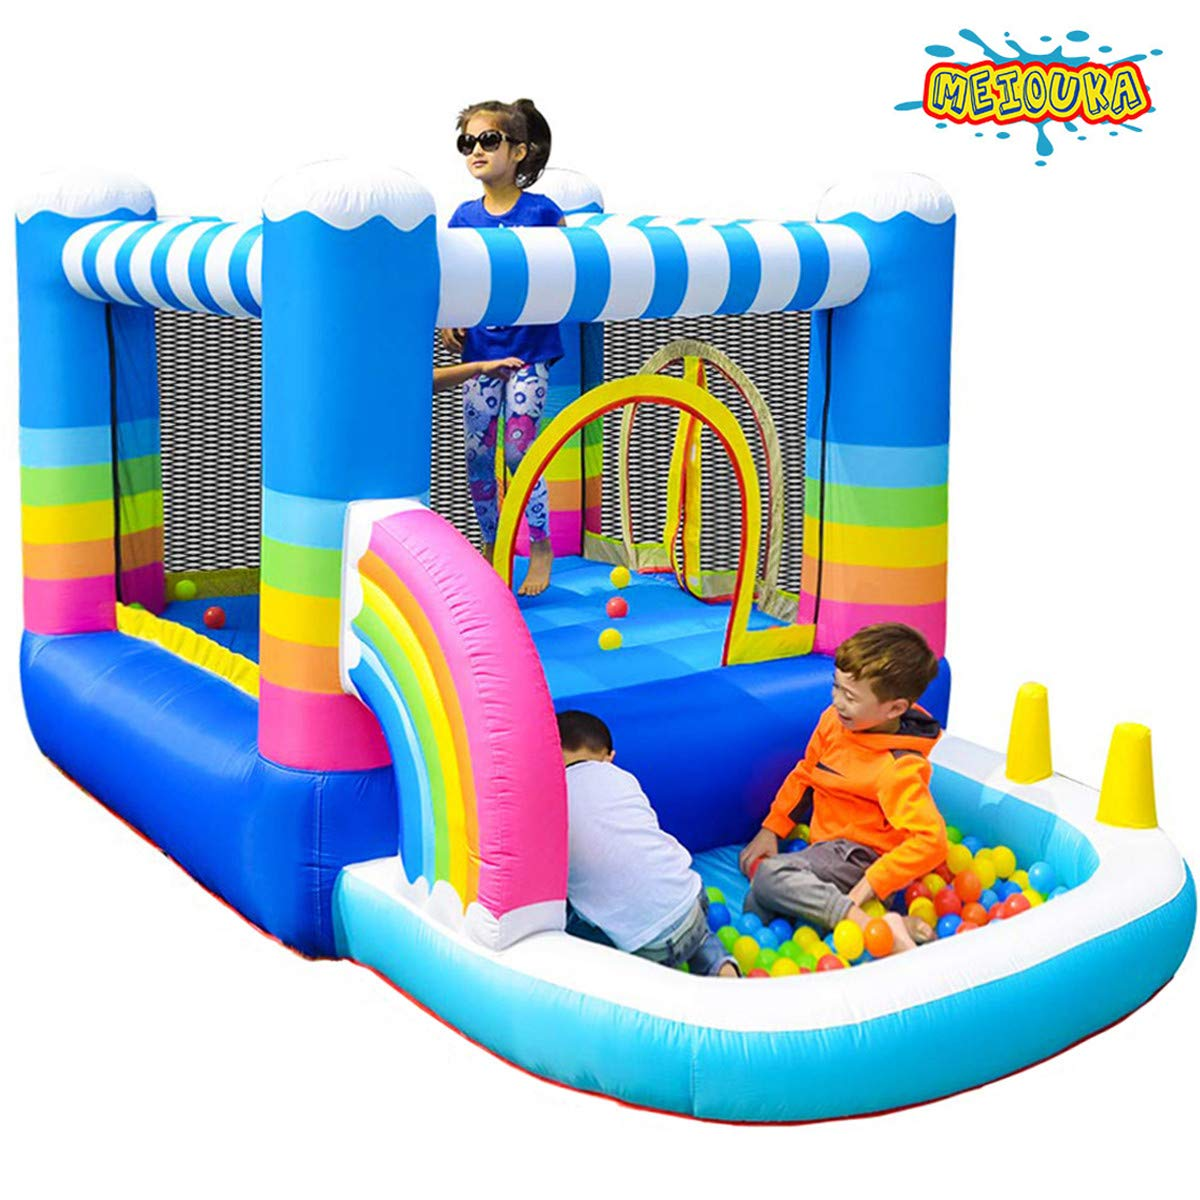 MEIOUKA Kids Inflatable Bounce Houses Jumper with 350W Blower Small Ball Pit Water Pool Rainbow Blow up Small Inflatable Bounce House for Kids Toddlers Indoor Outdoor Jumping Bouncer Party Yard Toys by MEIOUKA